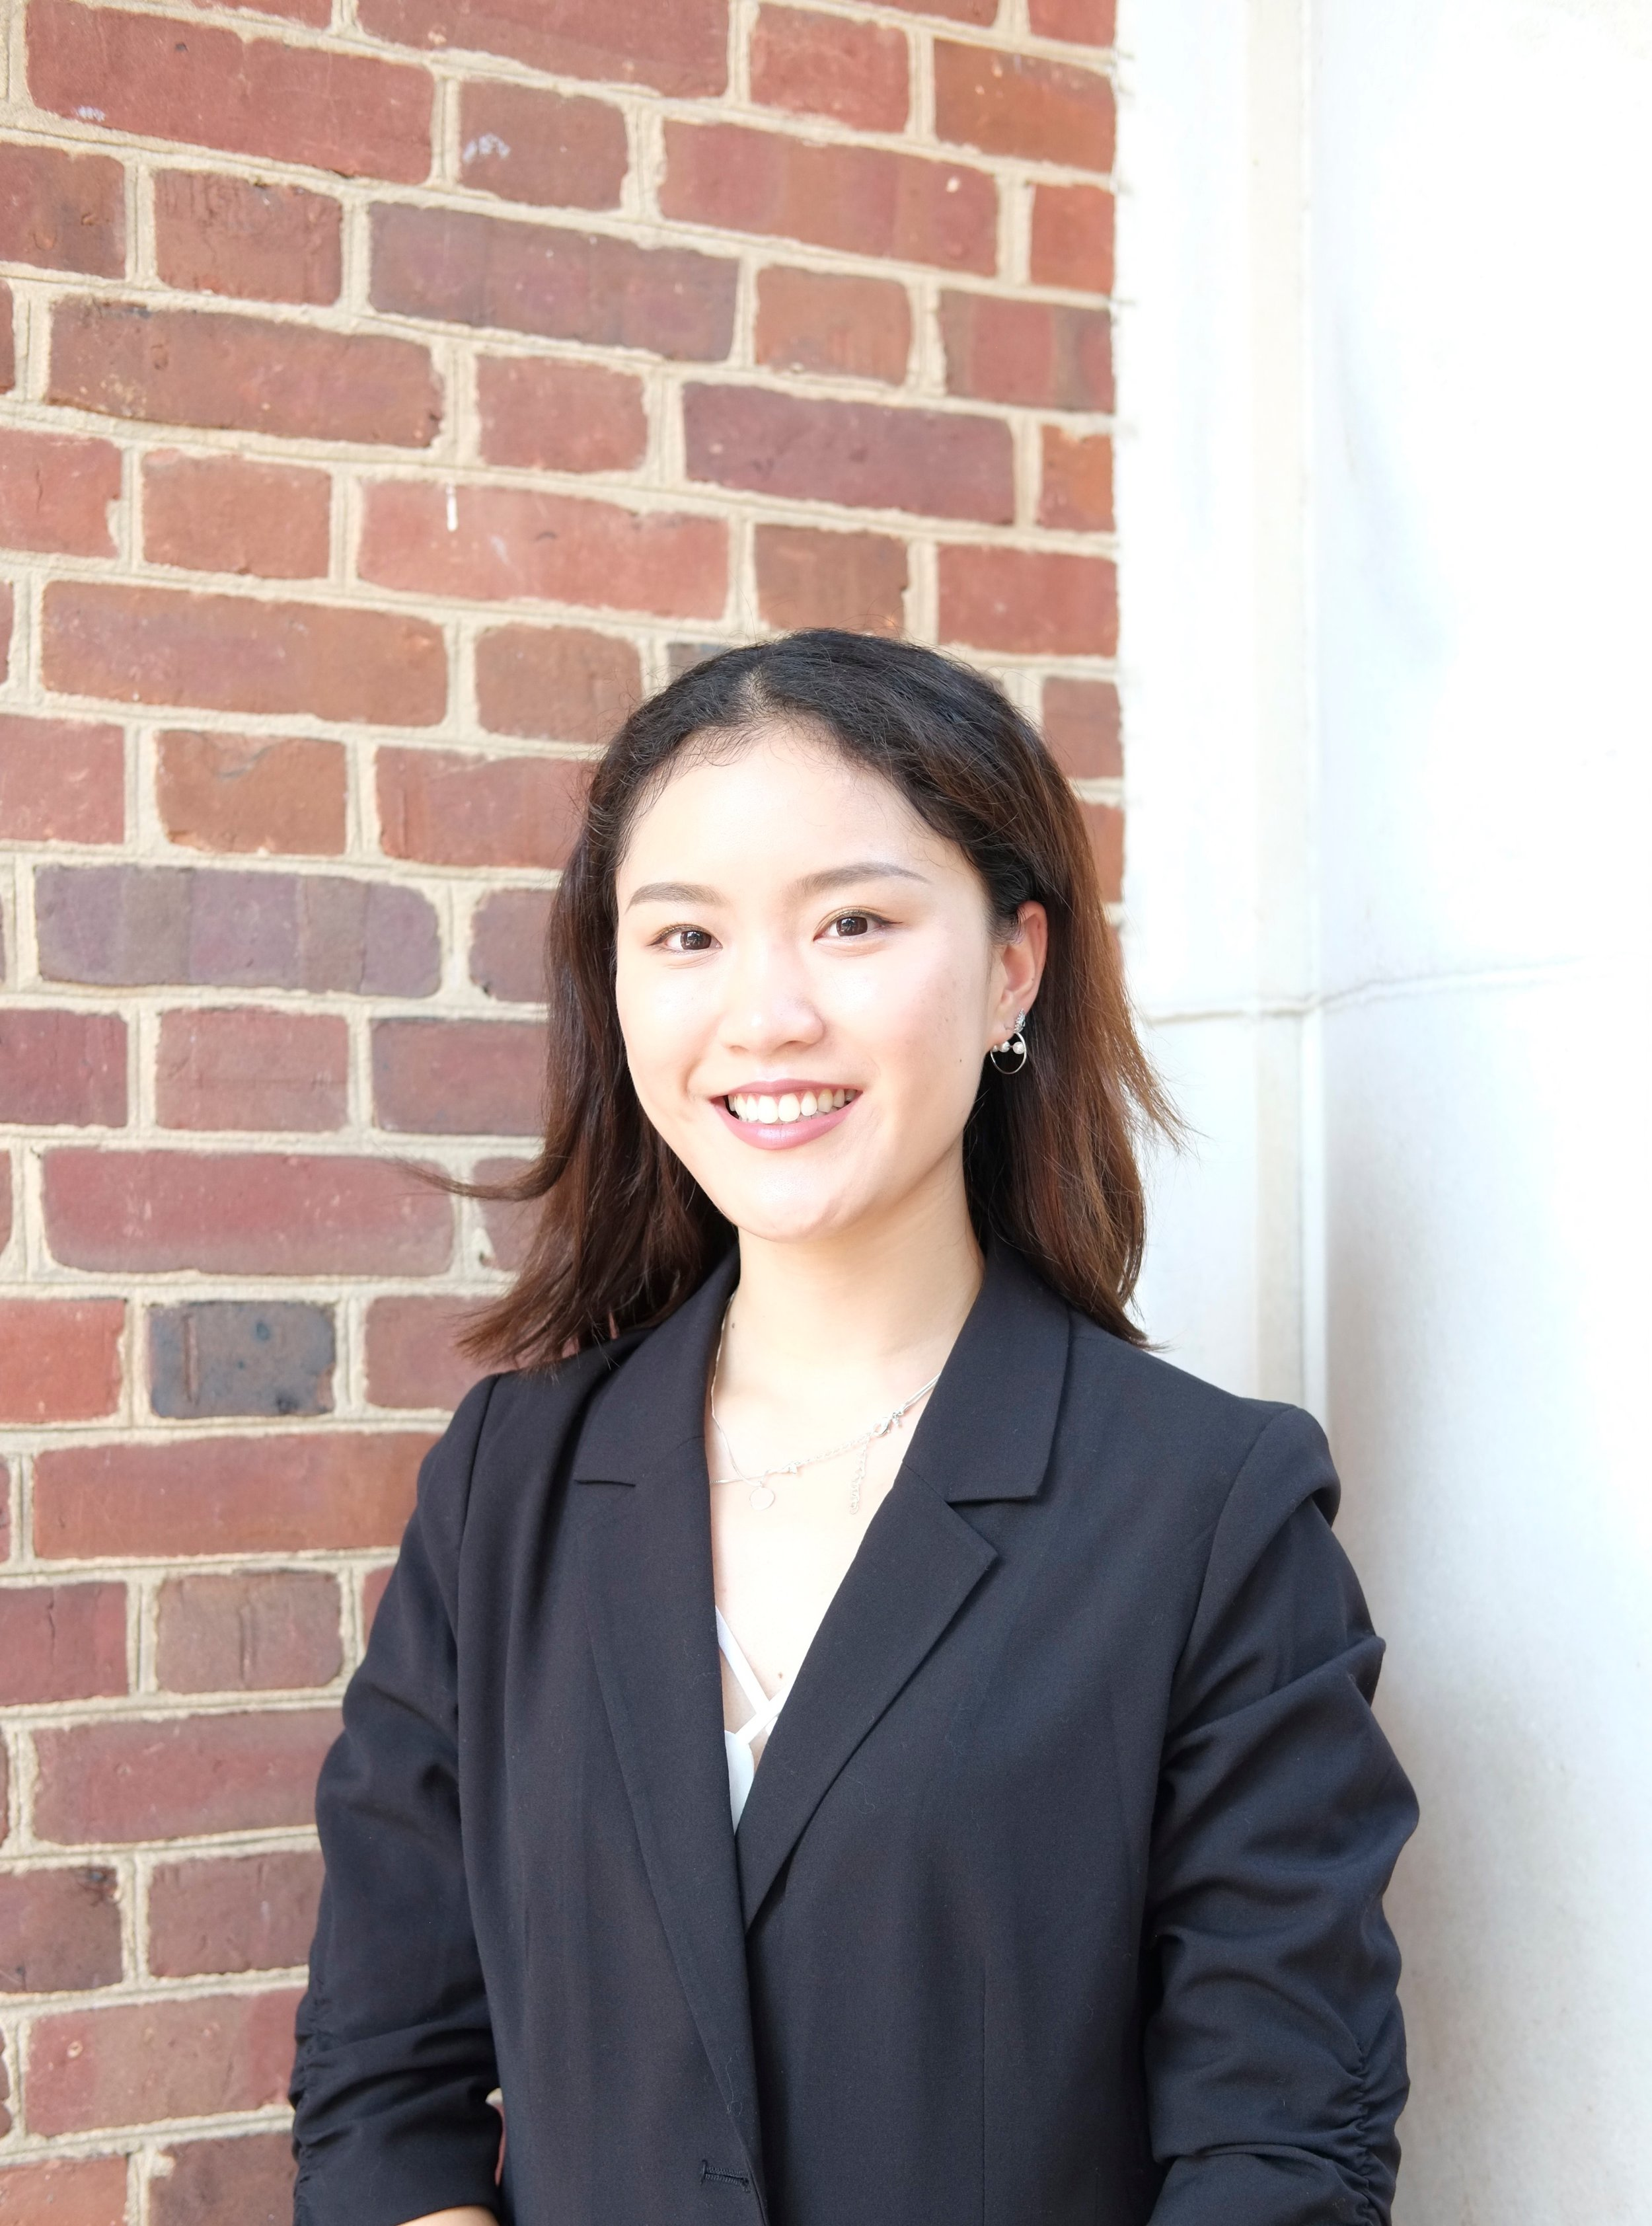 Events Chair: Audrey Tao - Audrey Yani Tao is a Public Health Studies and Economics major in the class of 2020. She has also decided to pursue a minor in Marketing and Communications. Audrey currently serves as the Events Chair in Women in Business.